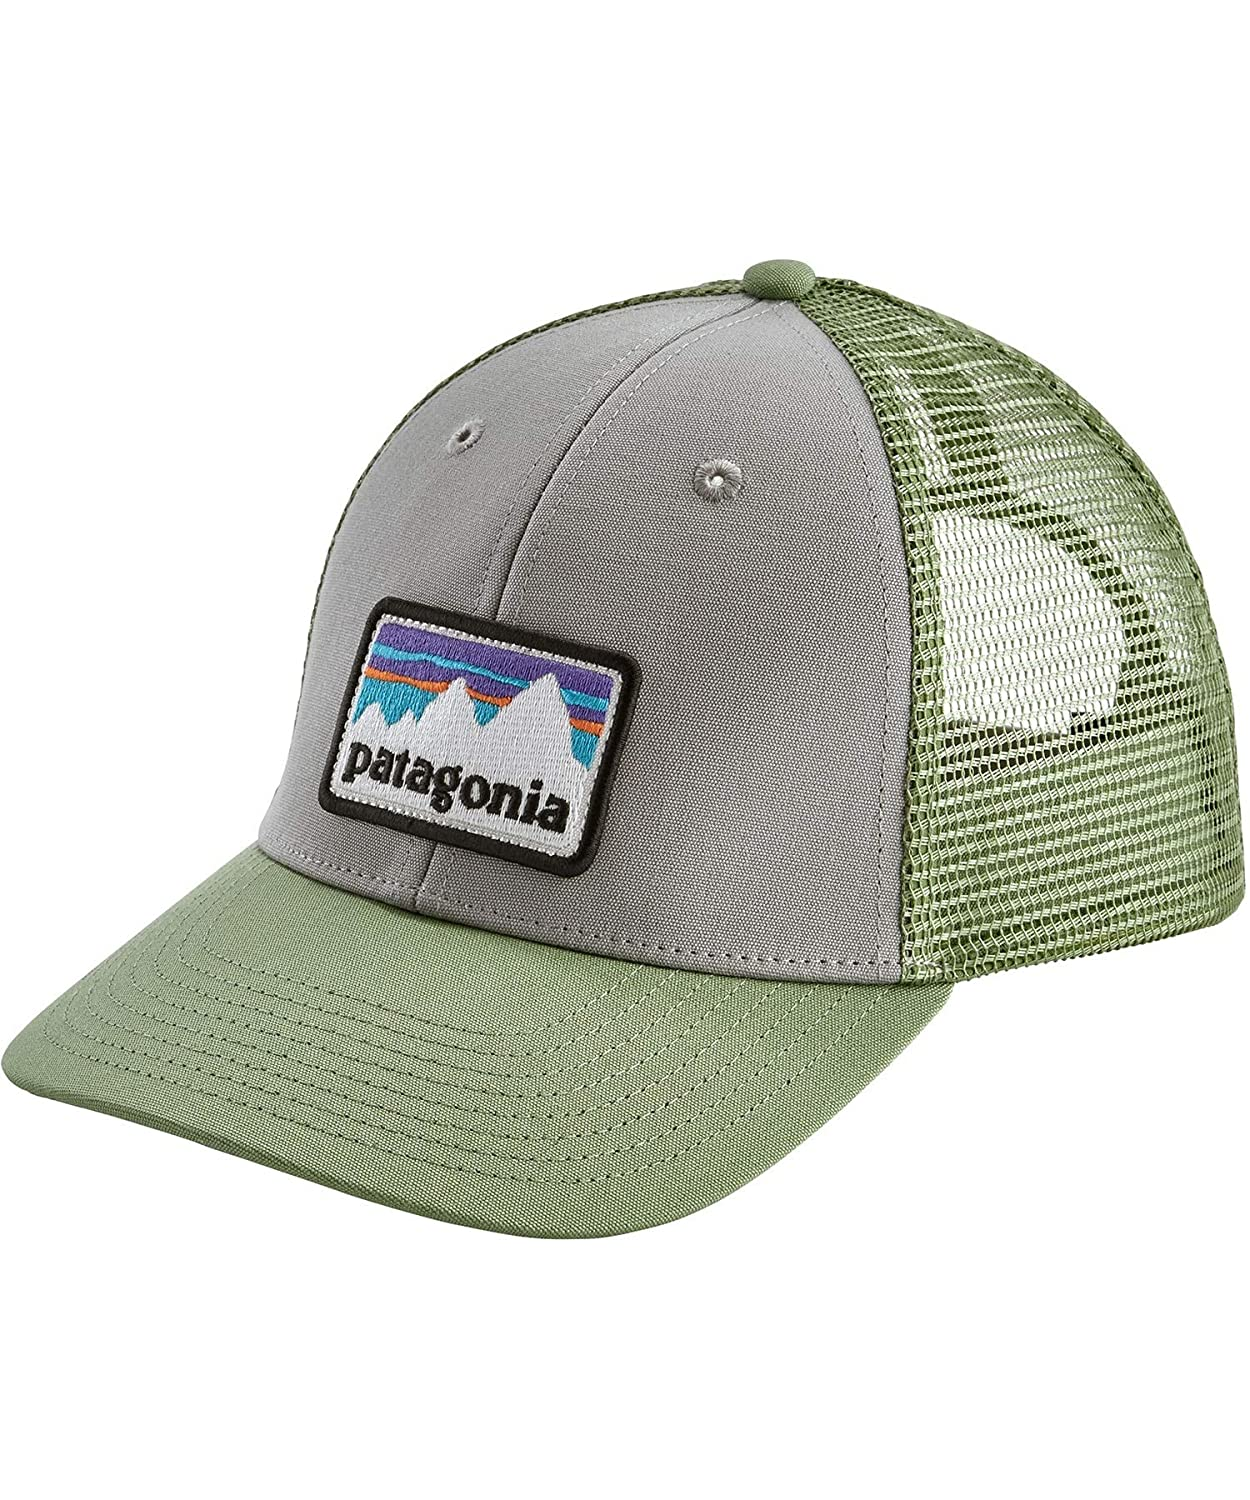 Patagonia Shop Sticker Patch LoPro - Gorra, Unisex Adulto, Drifter ...